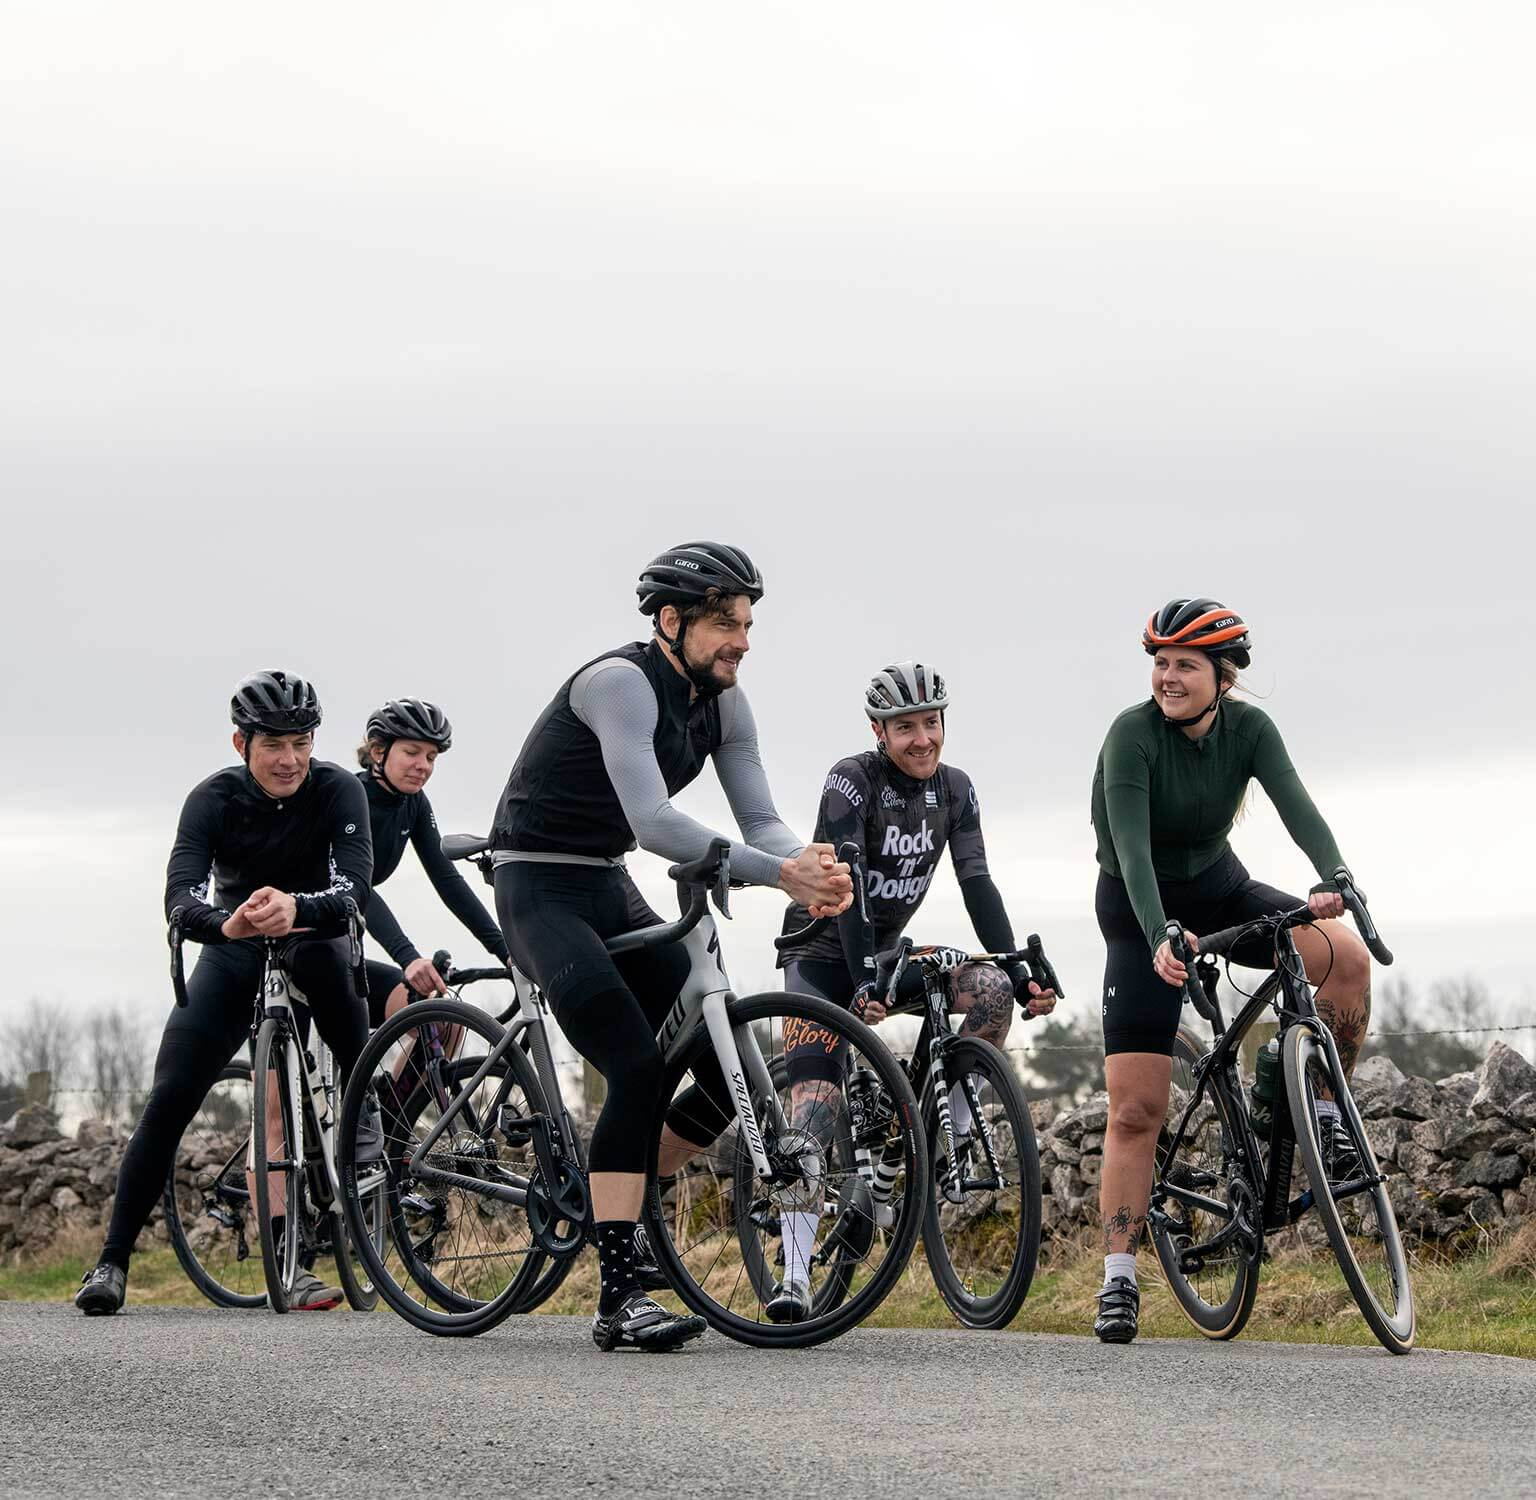 Road riding group UK